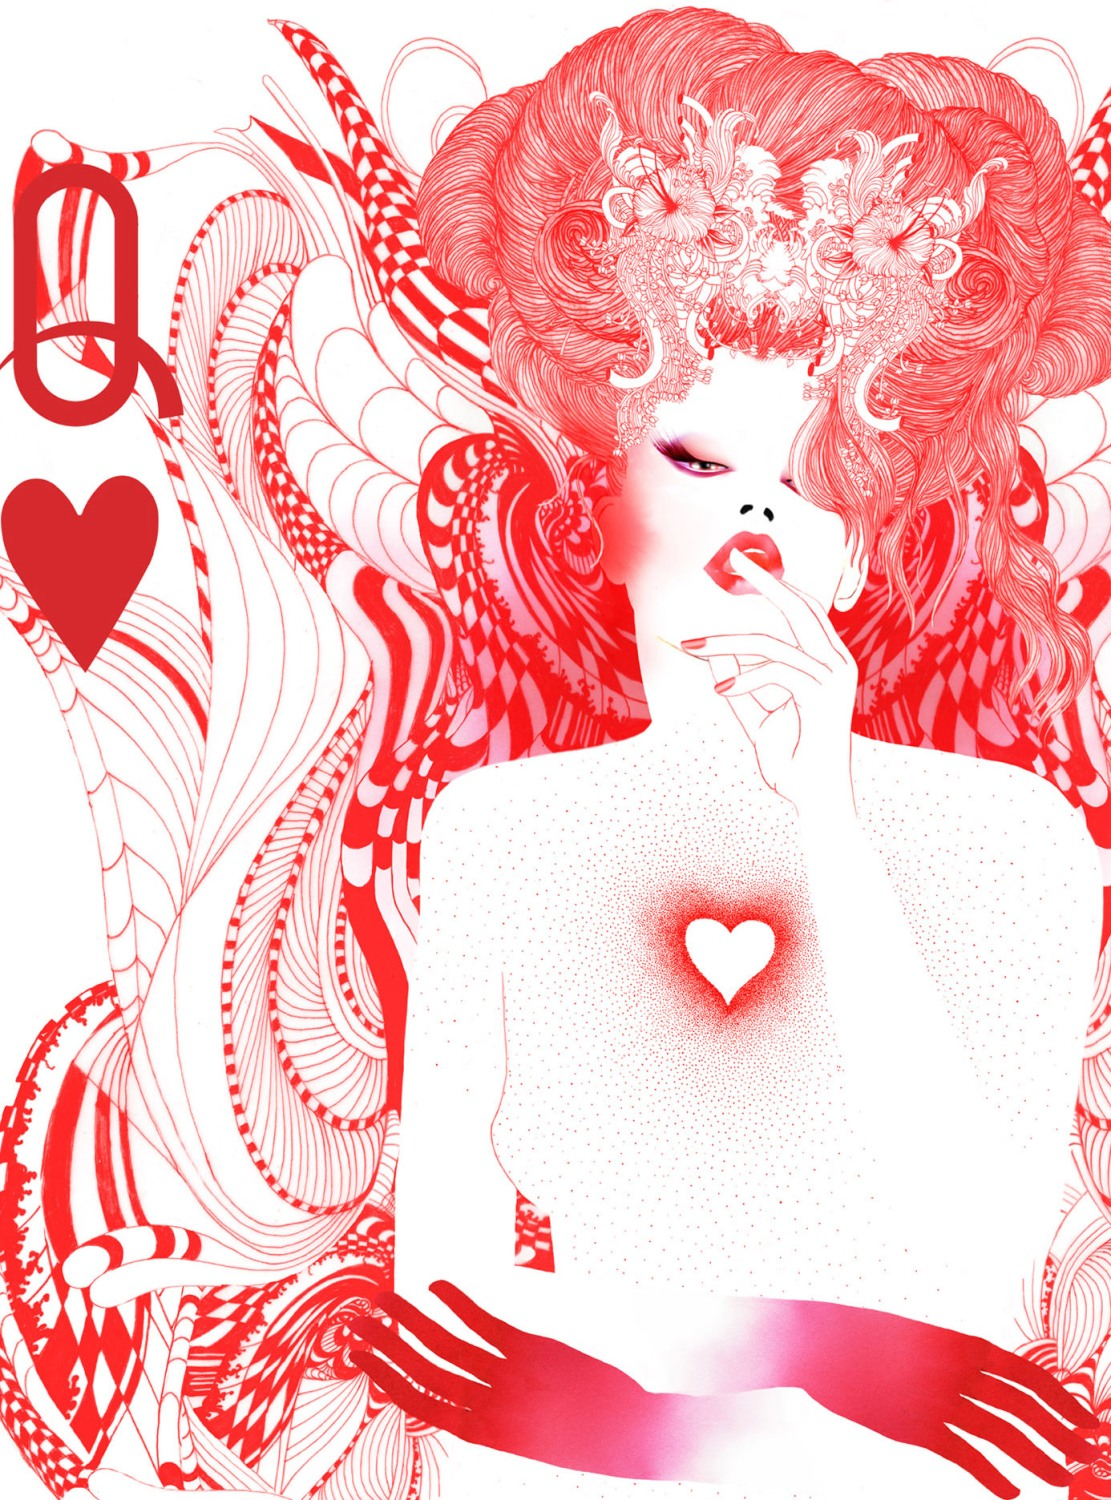 The Queen of Heart - by Noumeda Carbone